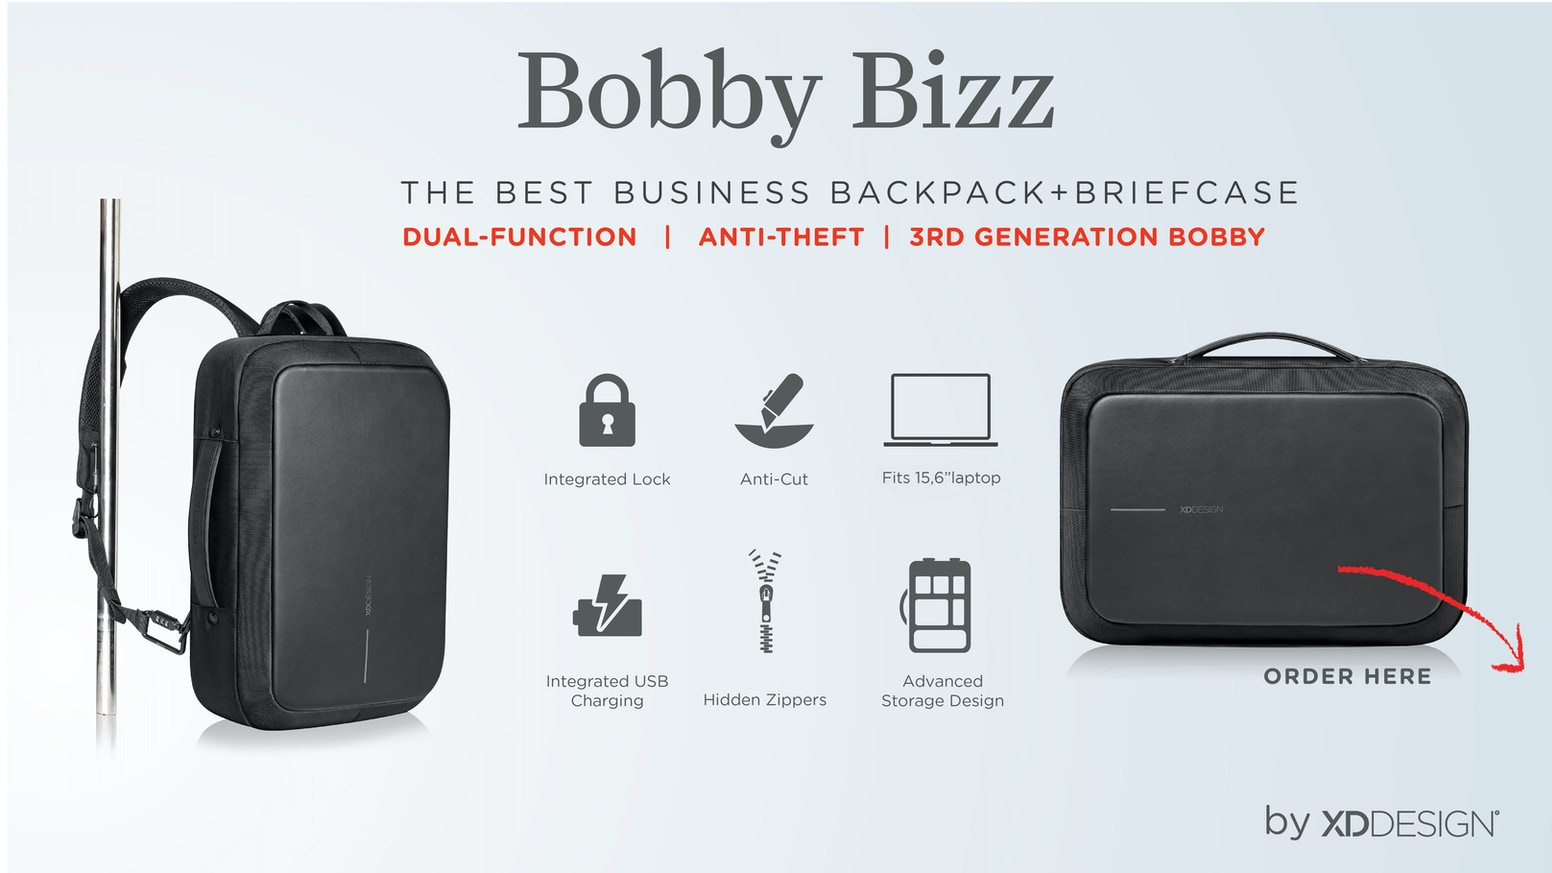 7fc3cc656725 ... The Best Business Briefcase and Backpack. Keep your belongings safe and  make your commute all that more comfortable with our latest generation